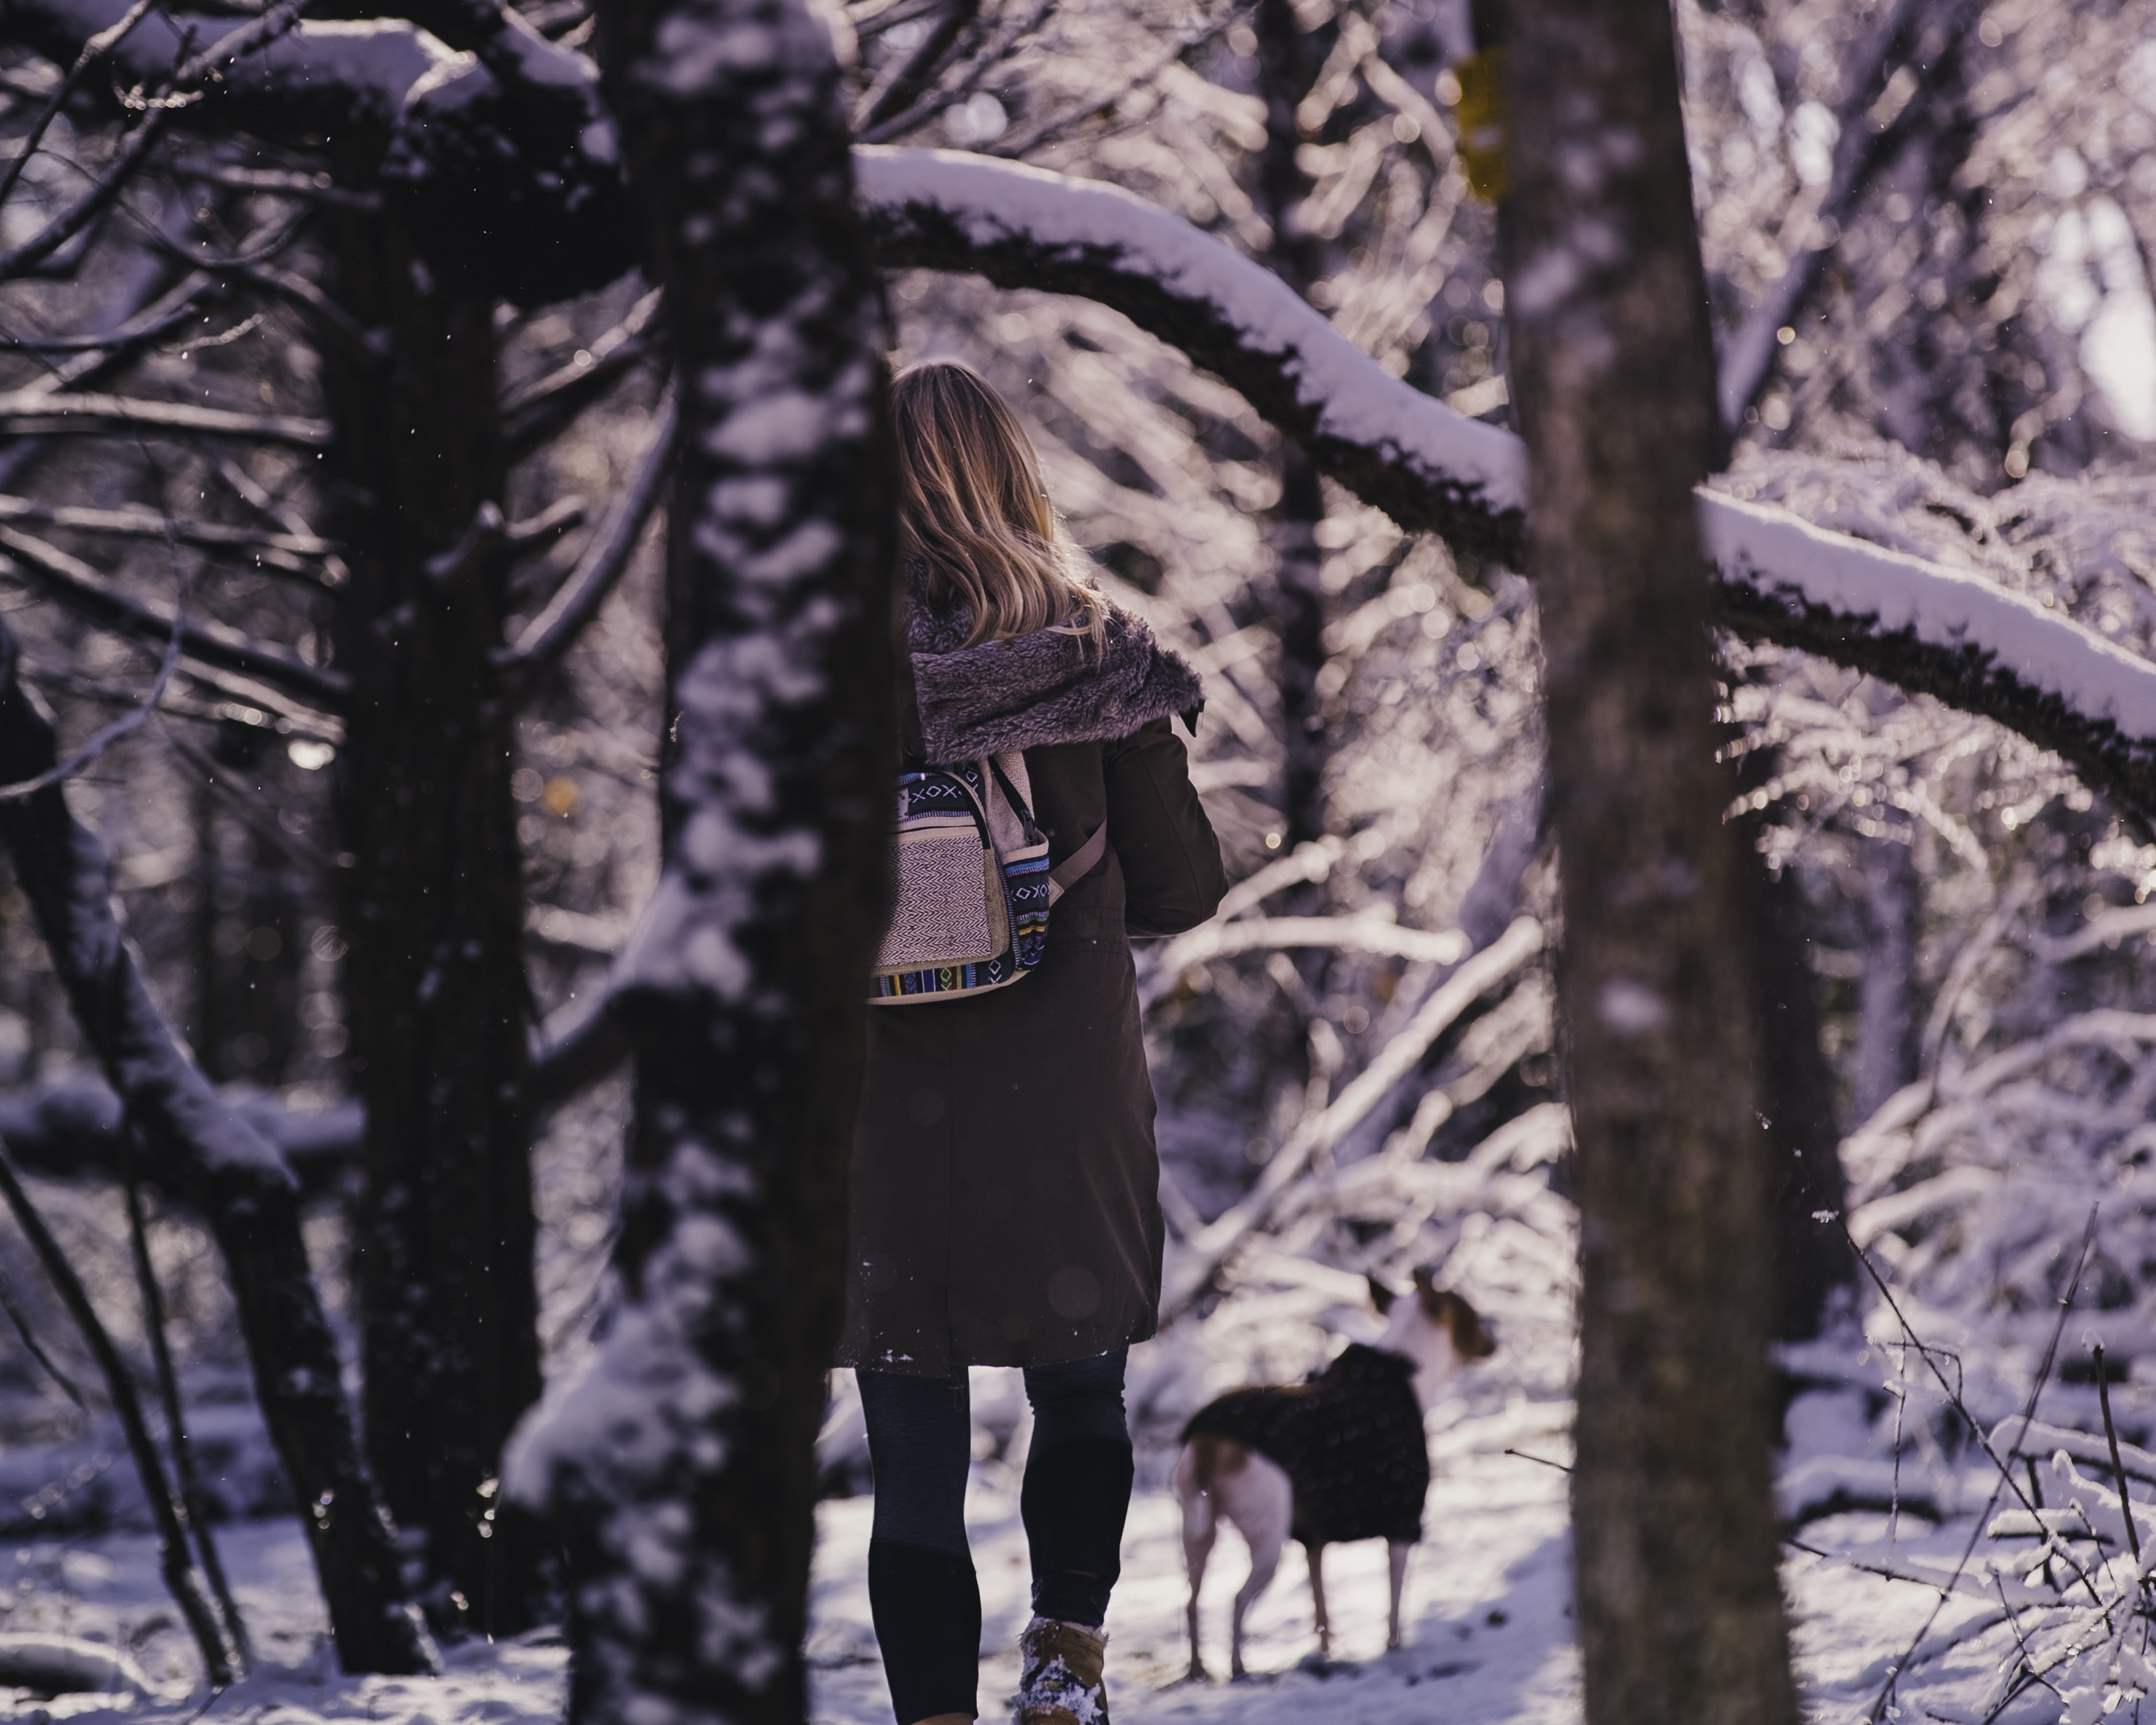 woman and dog standing on snow field near trees